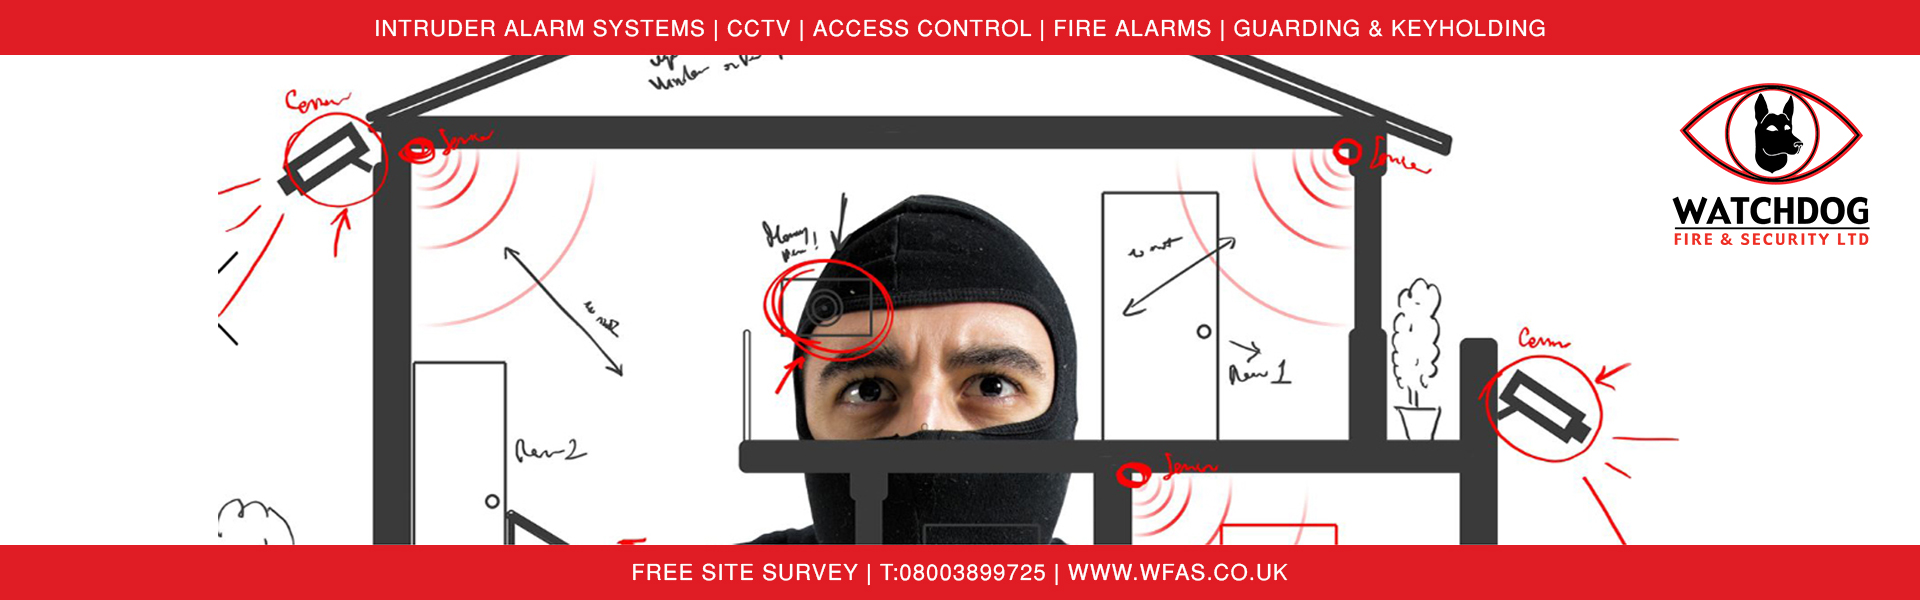 Home Watchdog Fire Security Ltd Intruder Alarm Circuit Welcome To